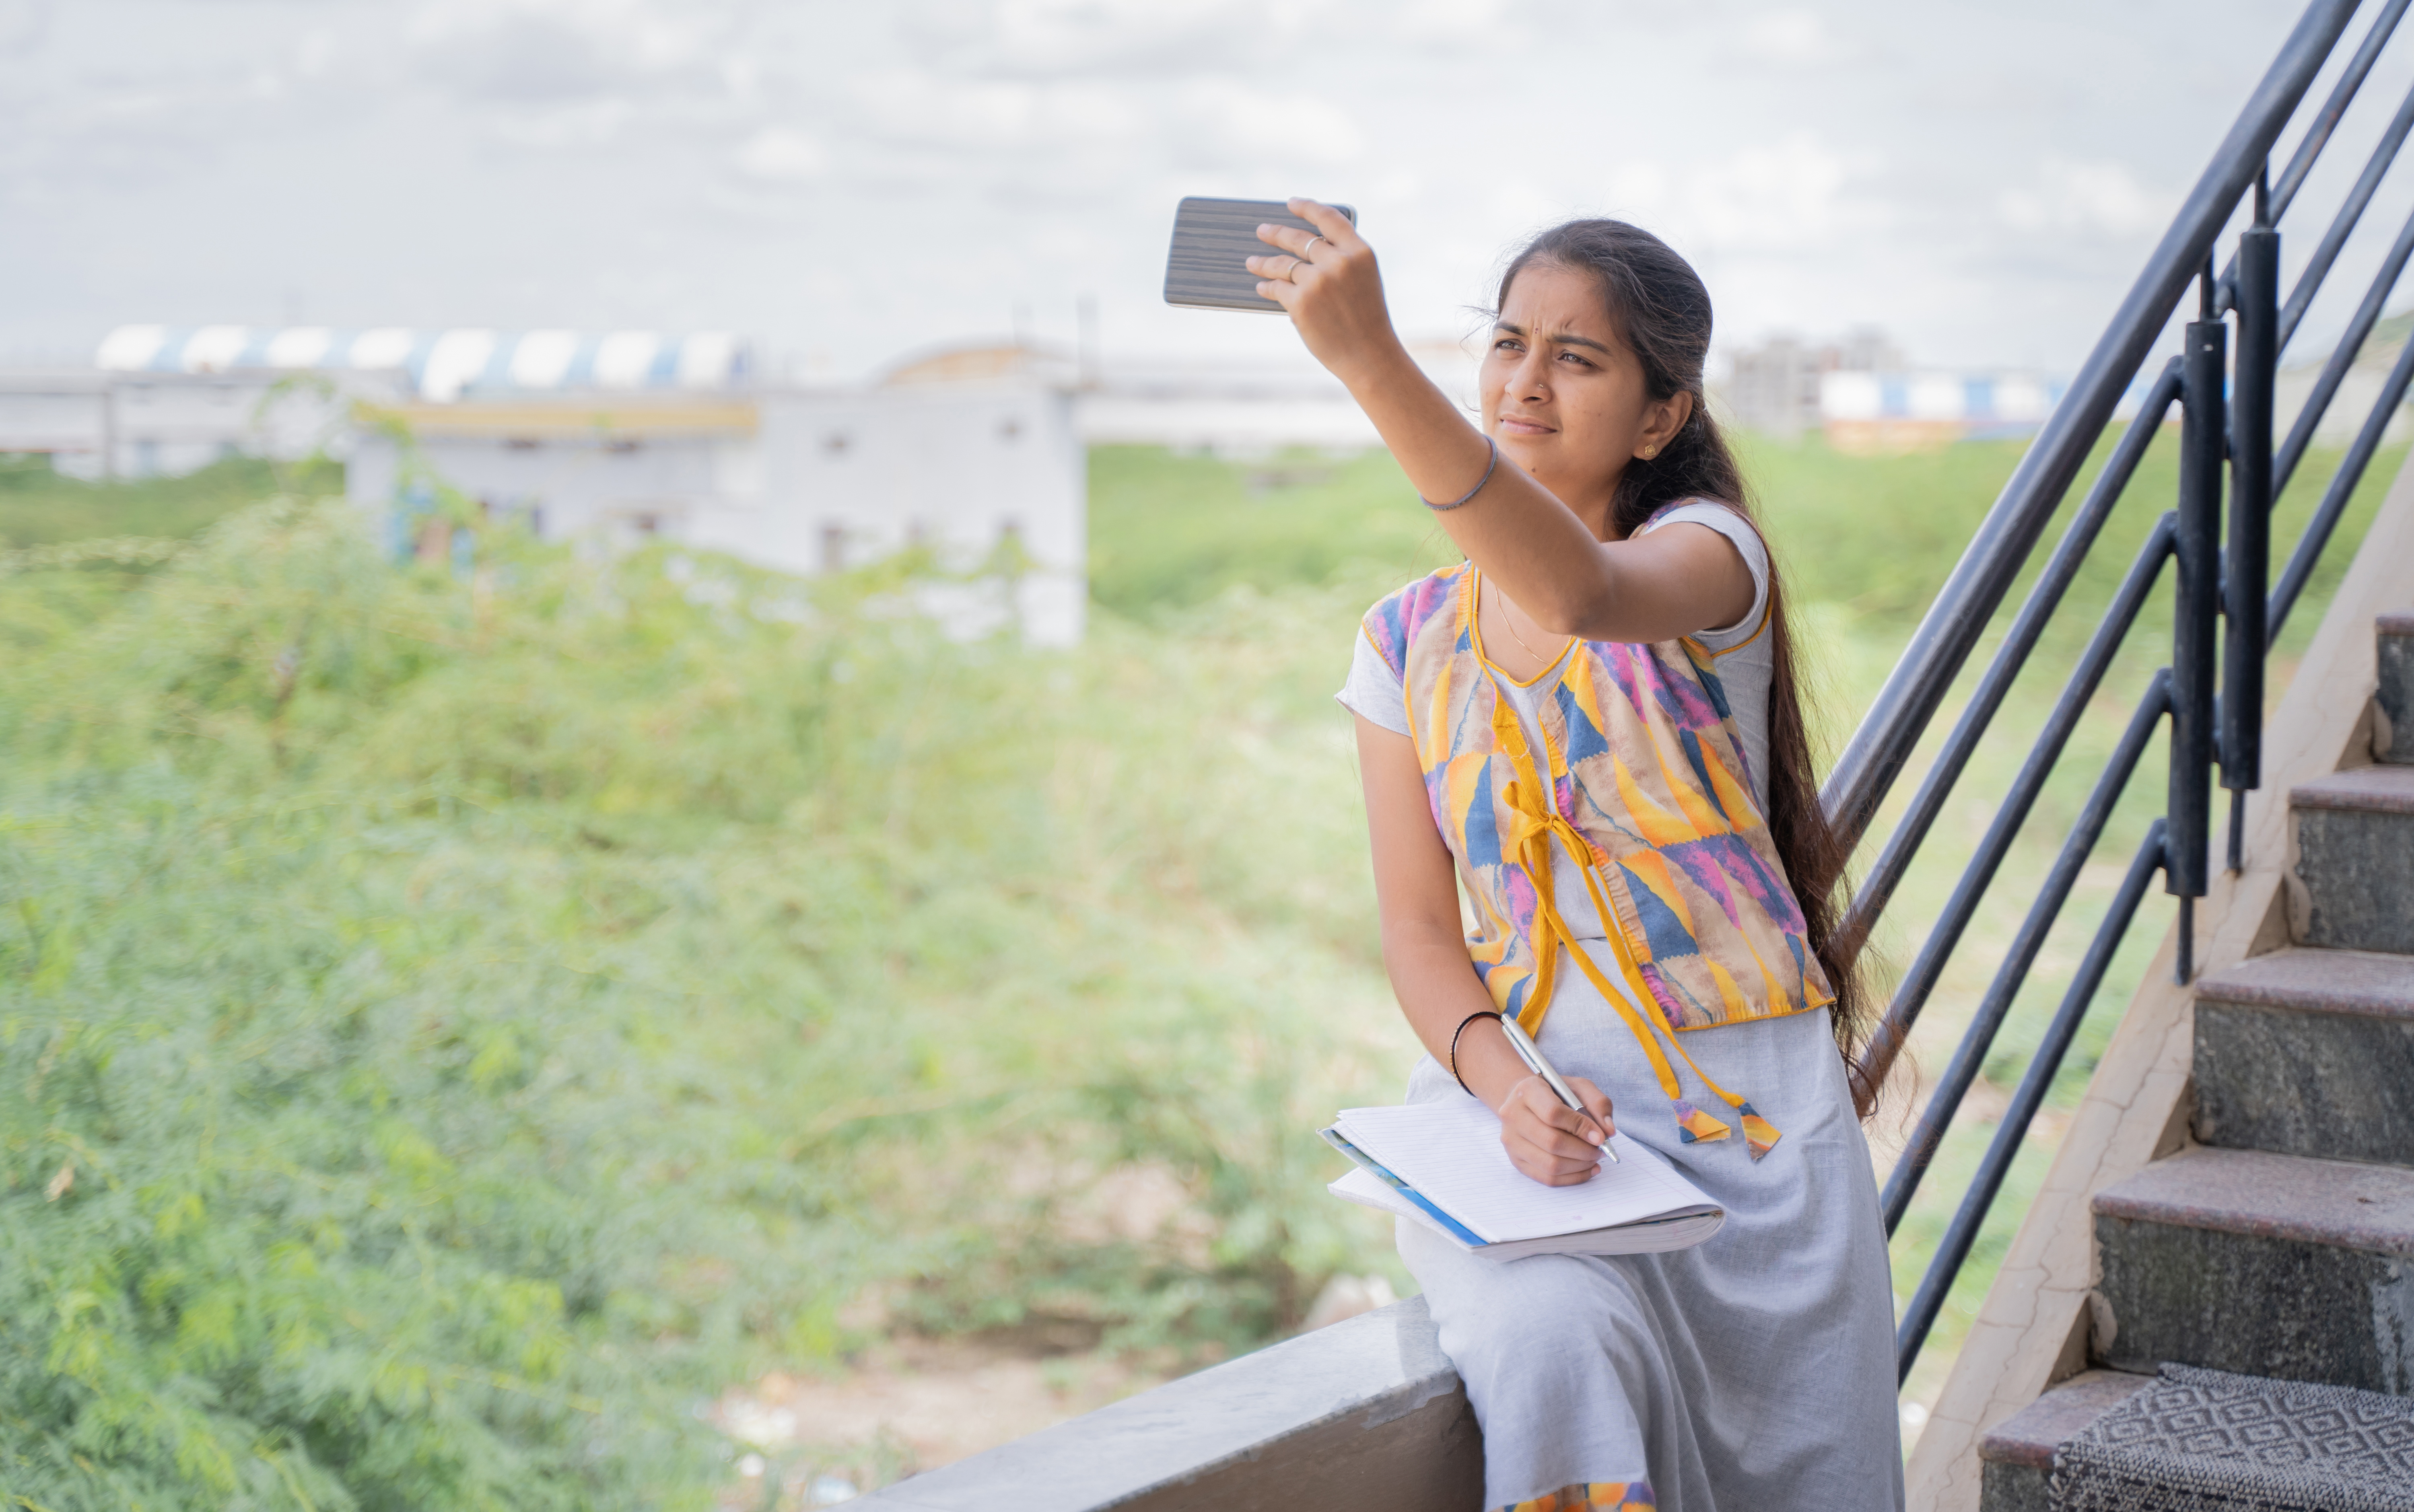 College girl outside home watching online class due to slow internet connection - concept of network issue at remote places and problem of virtual class or distance learning during pandemic